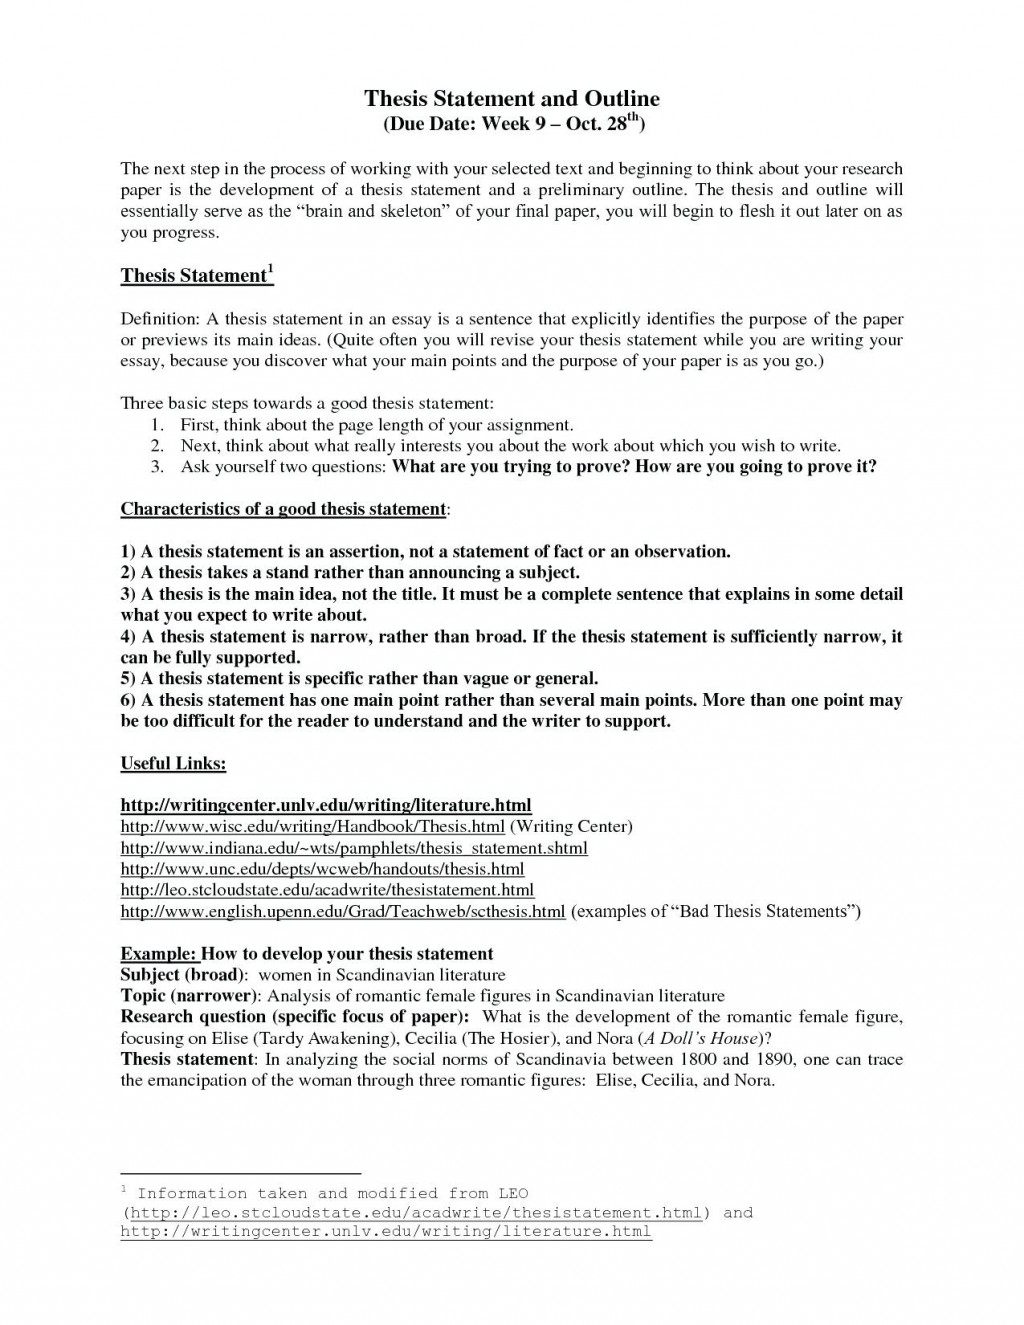 004 Essay Example Apa Template Paper Definition With Cheap Papers Style Running Head Write My For Shocking Free App Argumentative Online Large